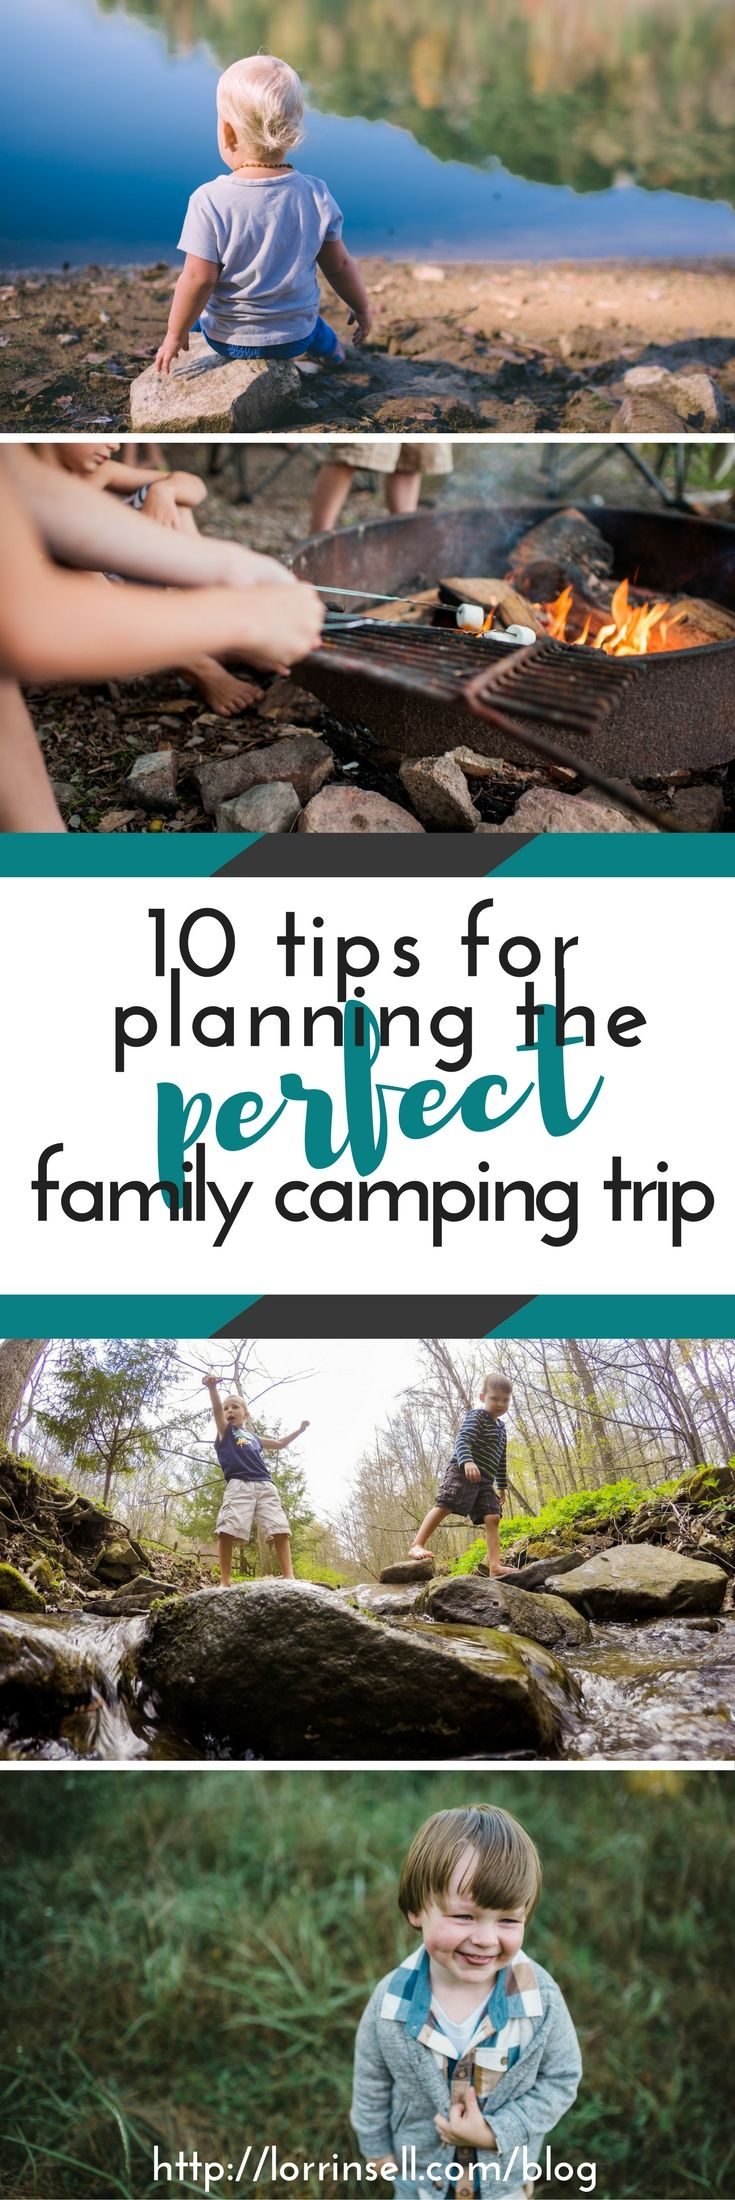 planning a camping trip for your family doesn't have to be hard. these are awesome tips for planning a family camping trip!